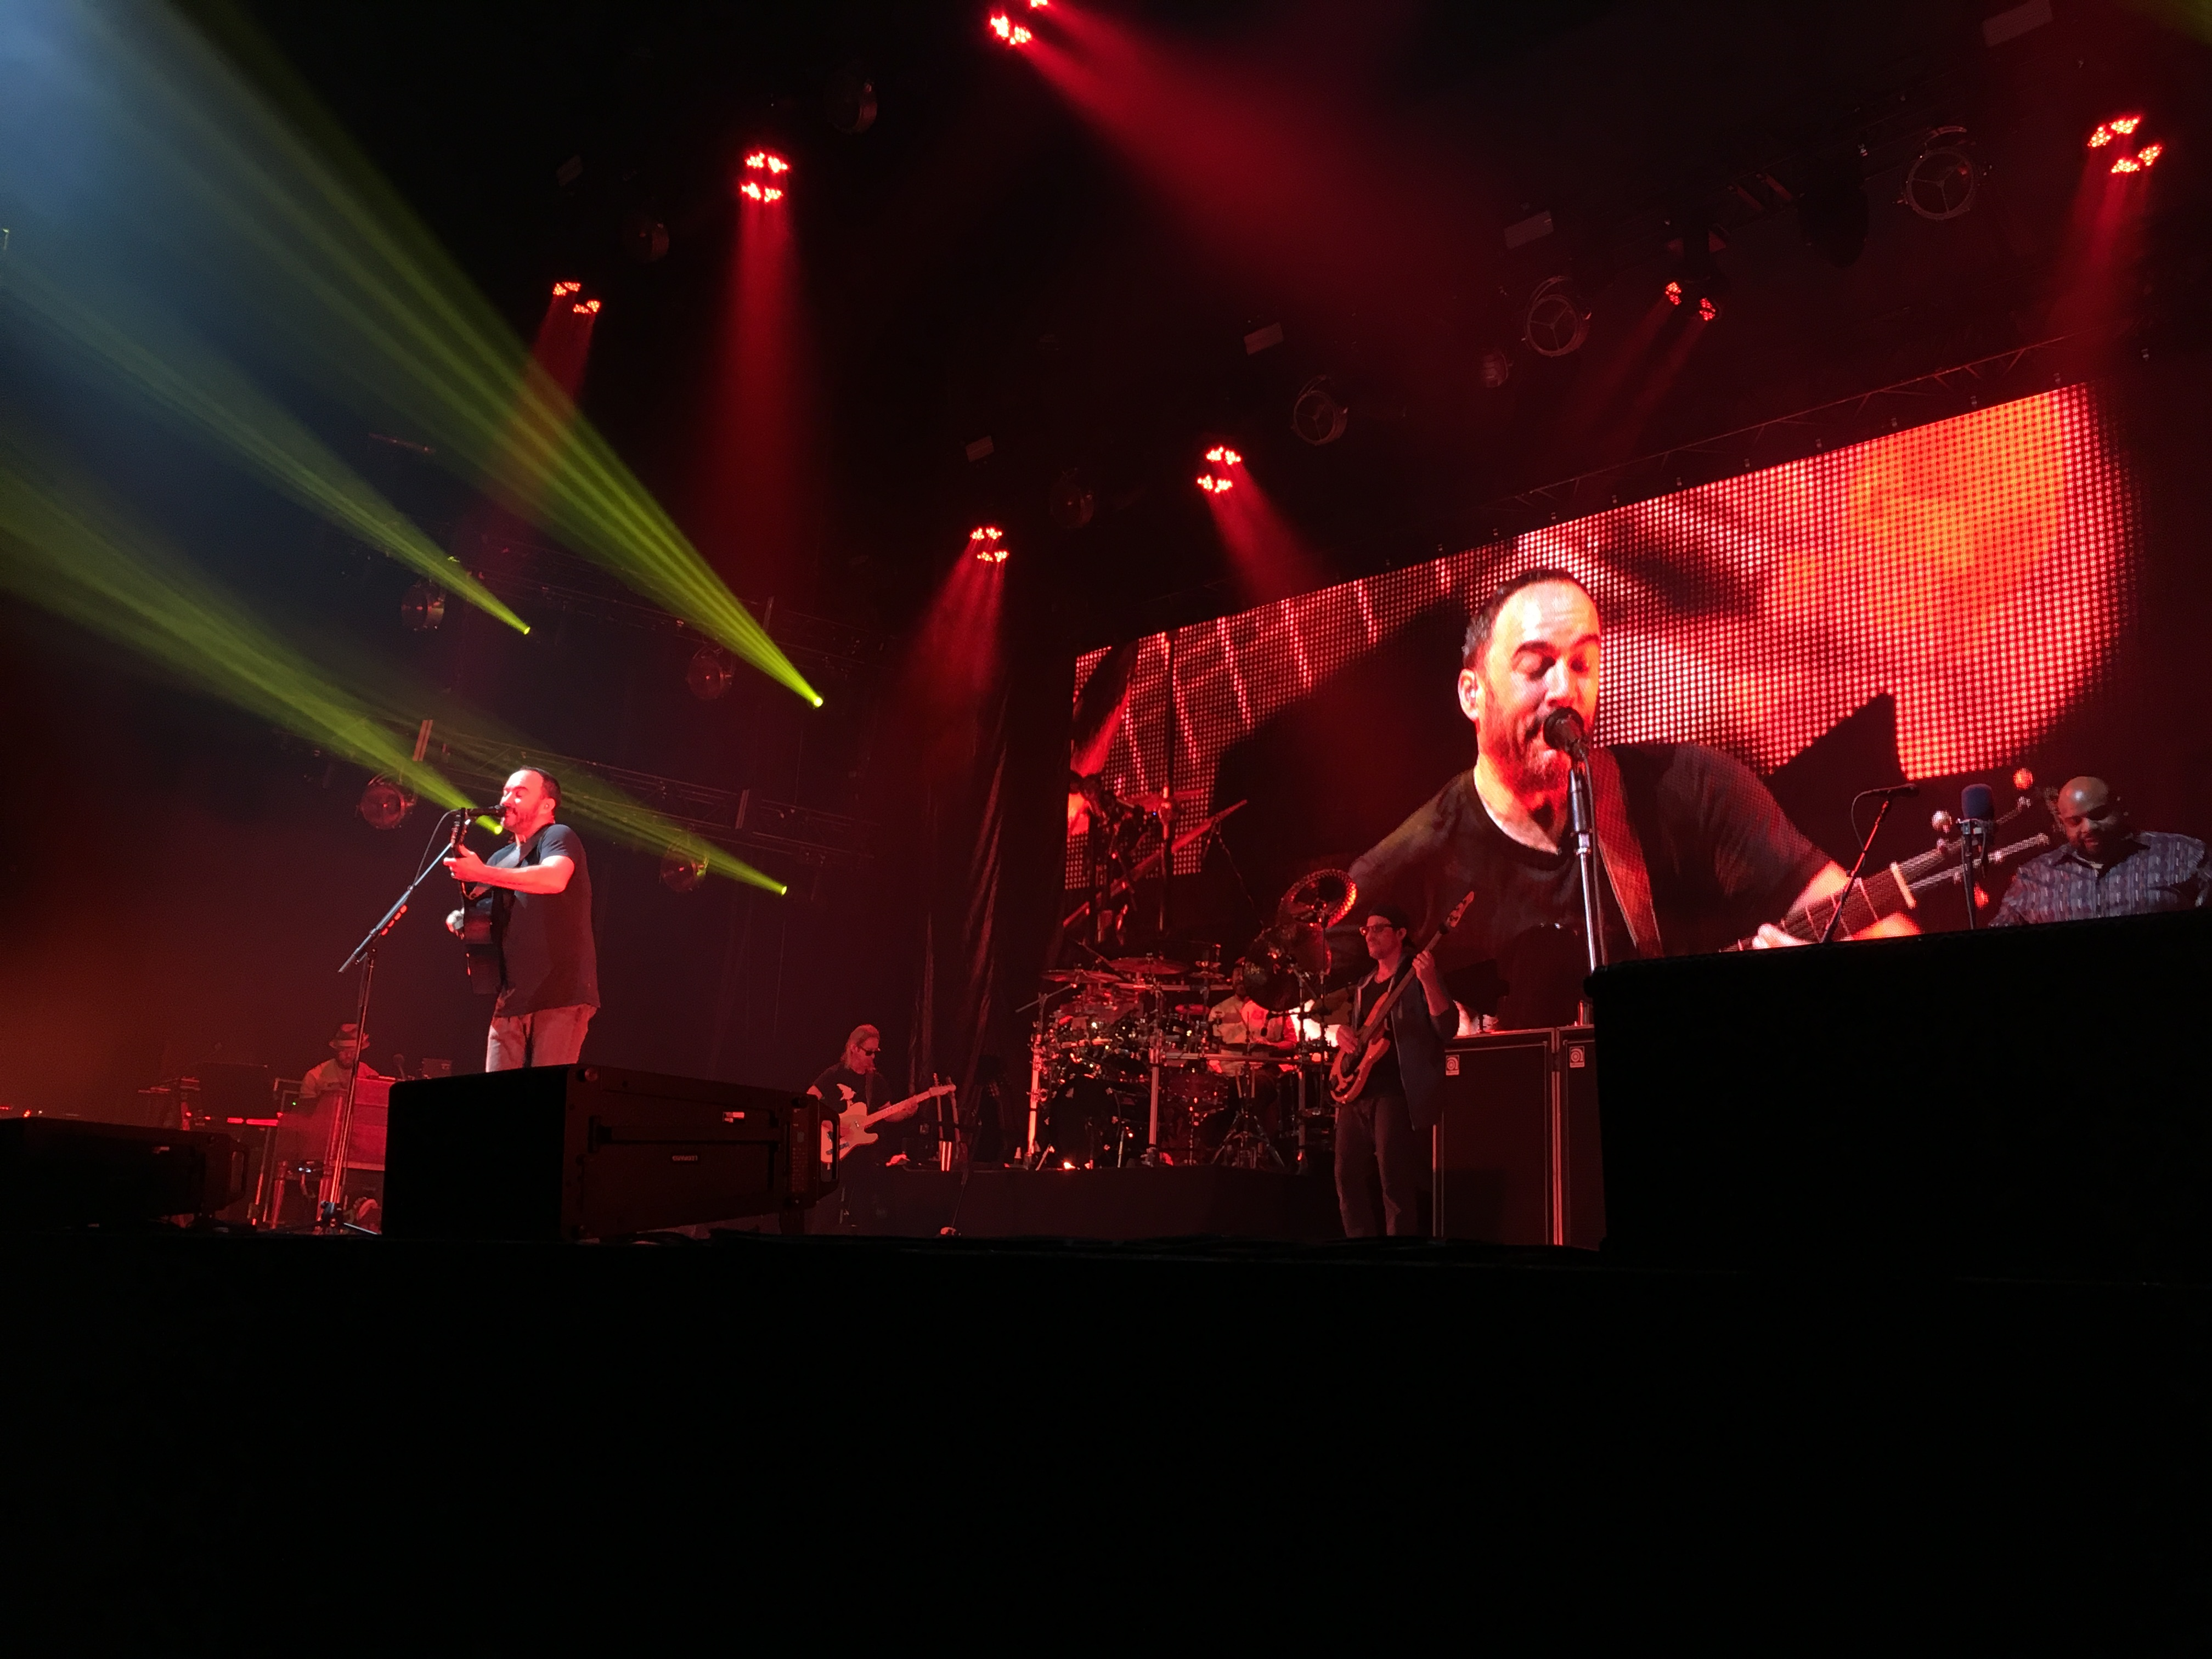 Concertreview: Dave Matthews Band: Fenomenaal!